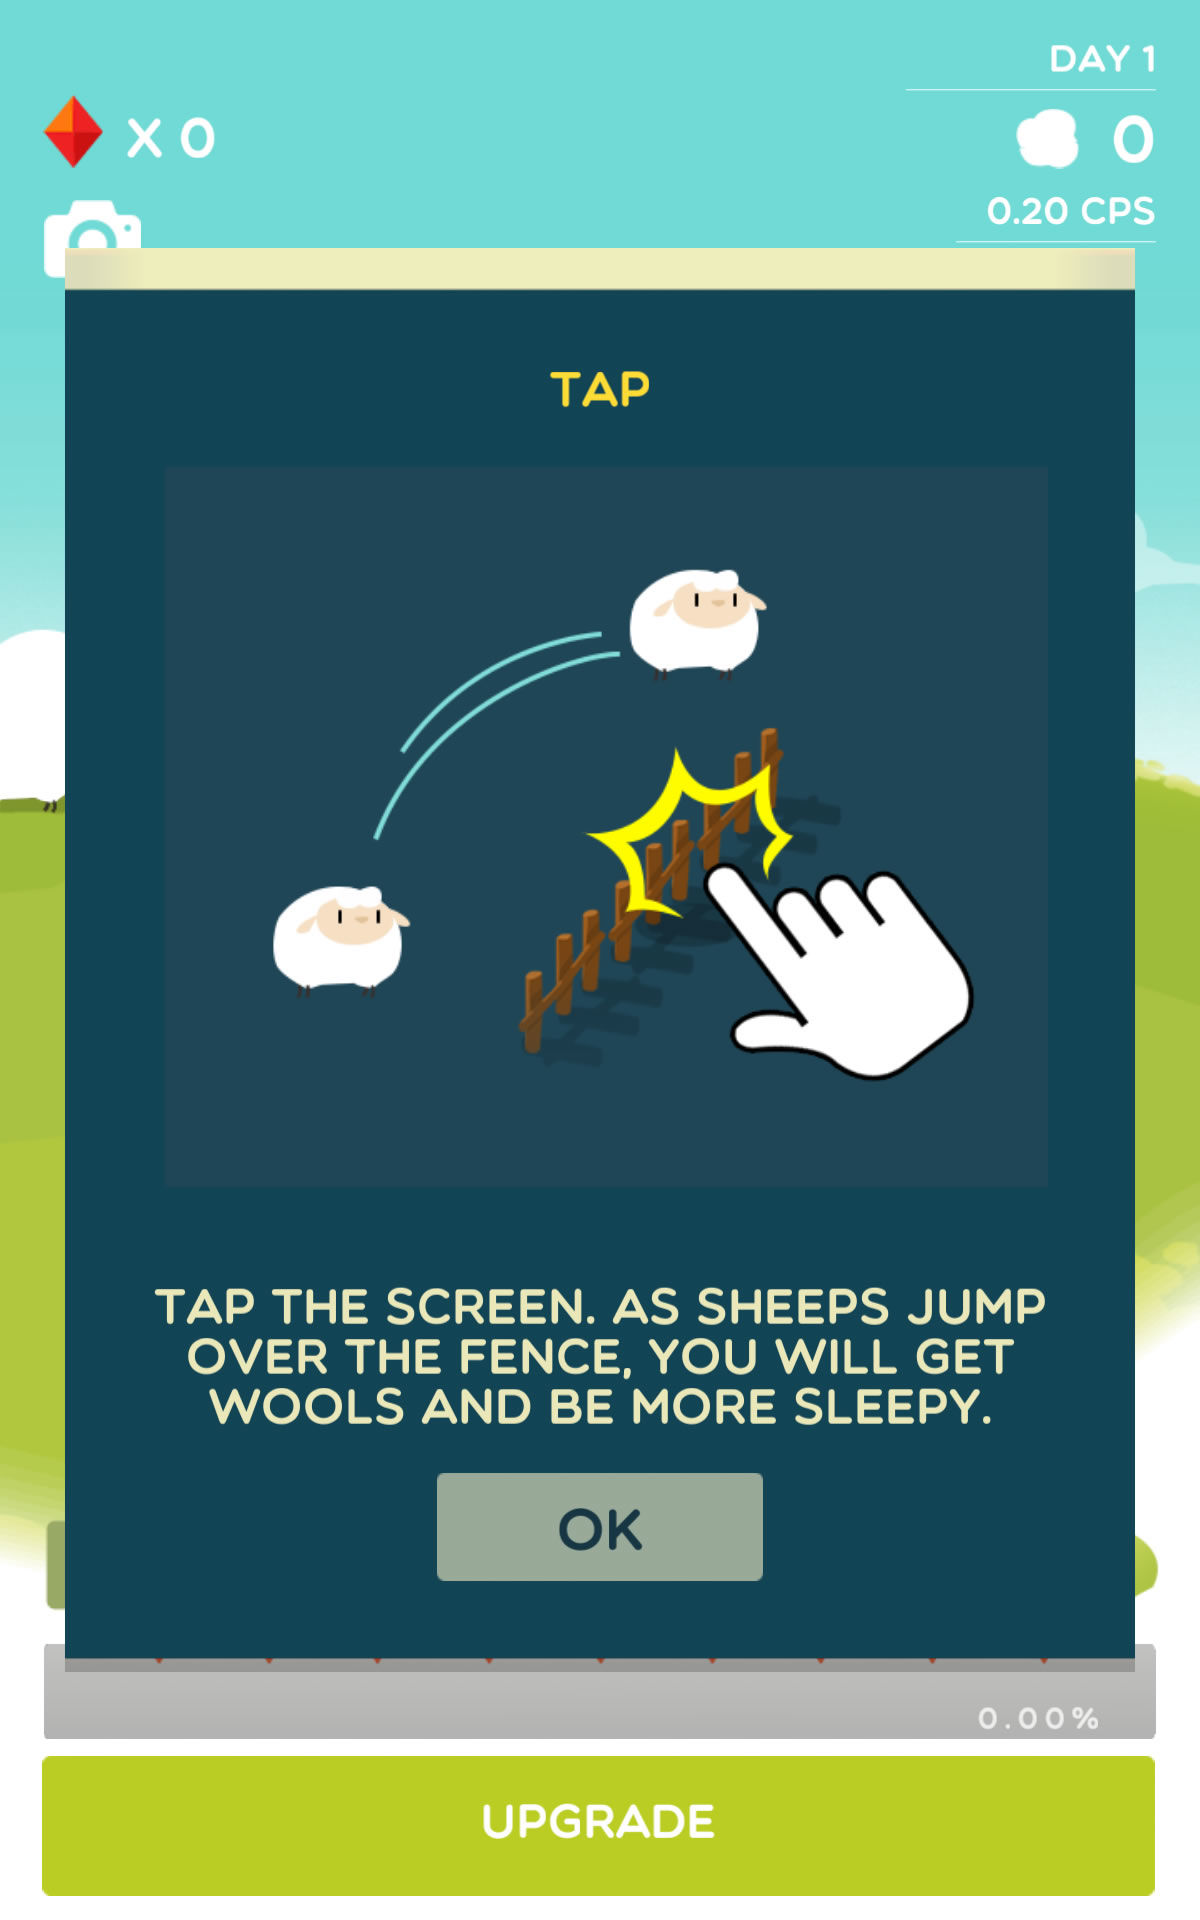 791125-sheep-in-dream-android-screenshot-instructions-for-the-game.jpg (1200×1920)